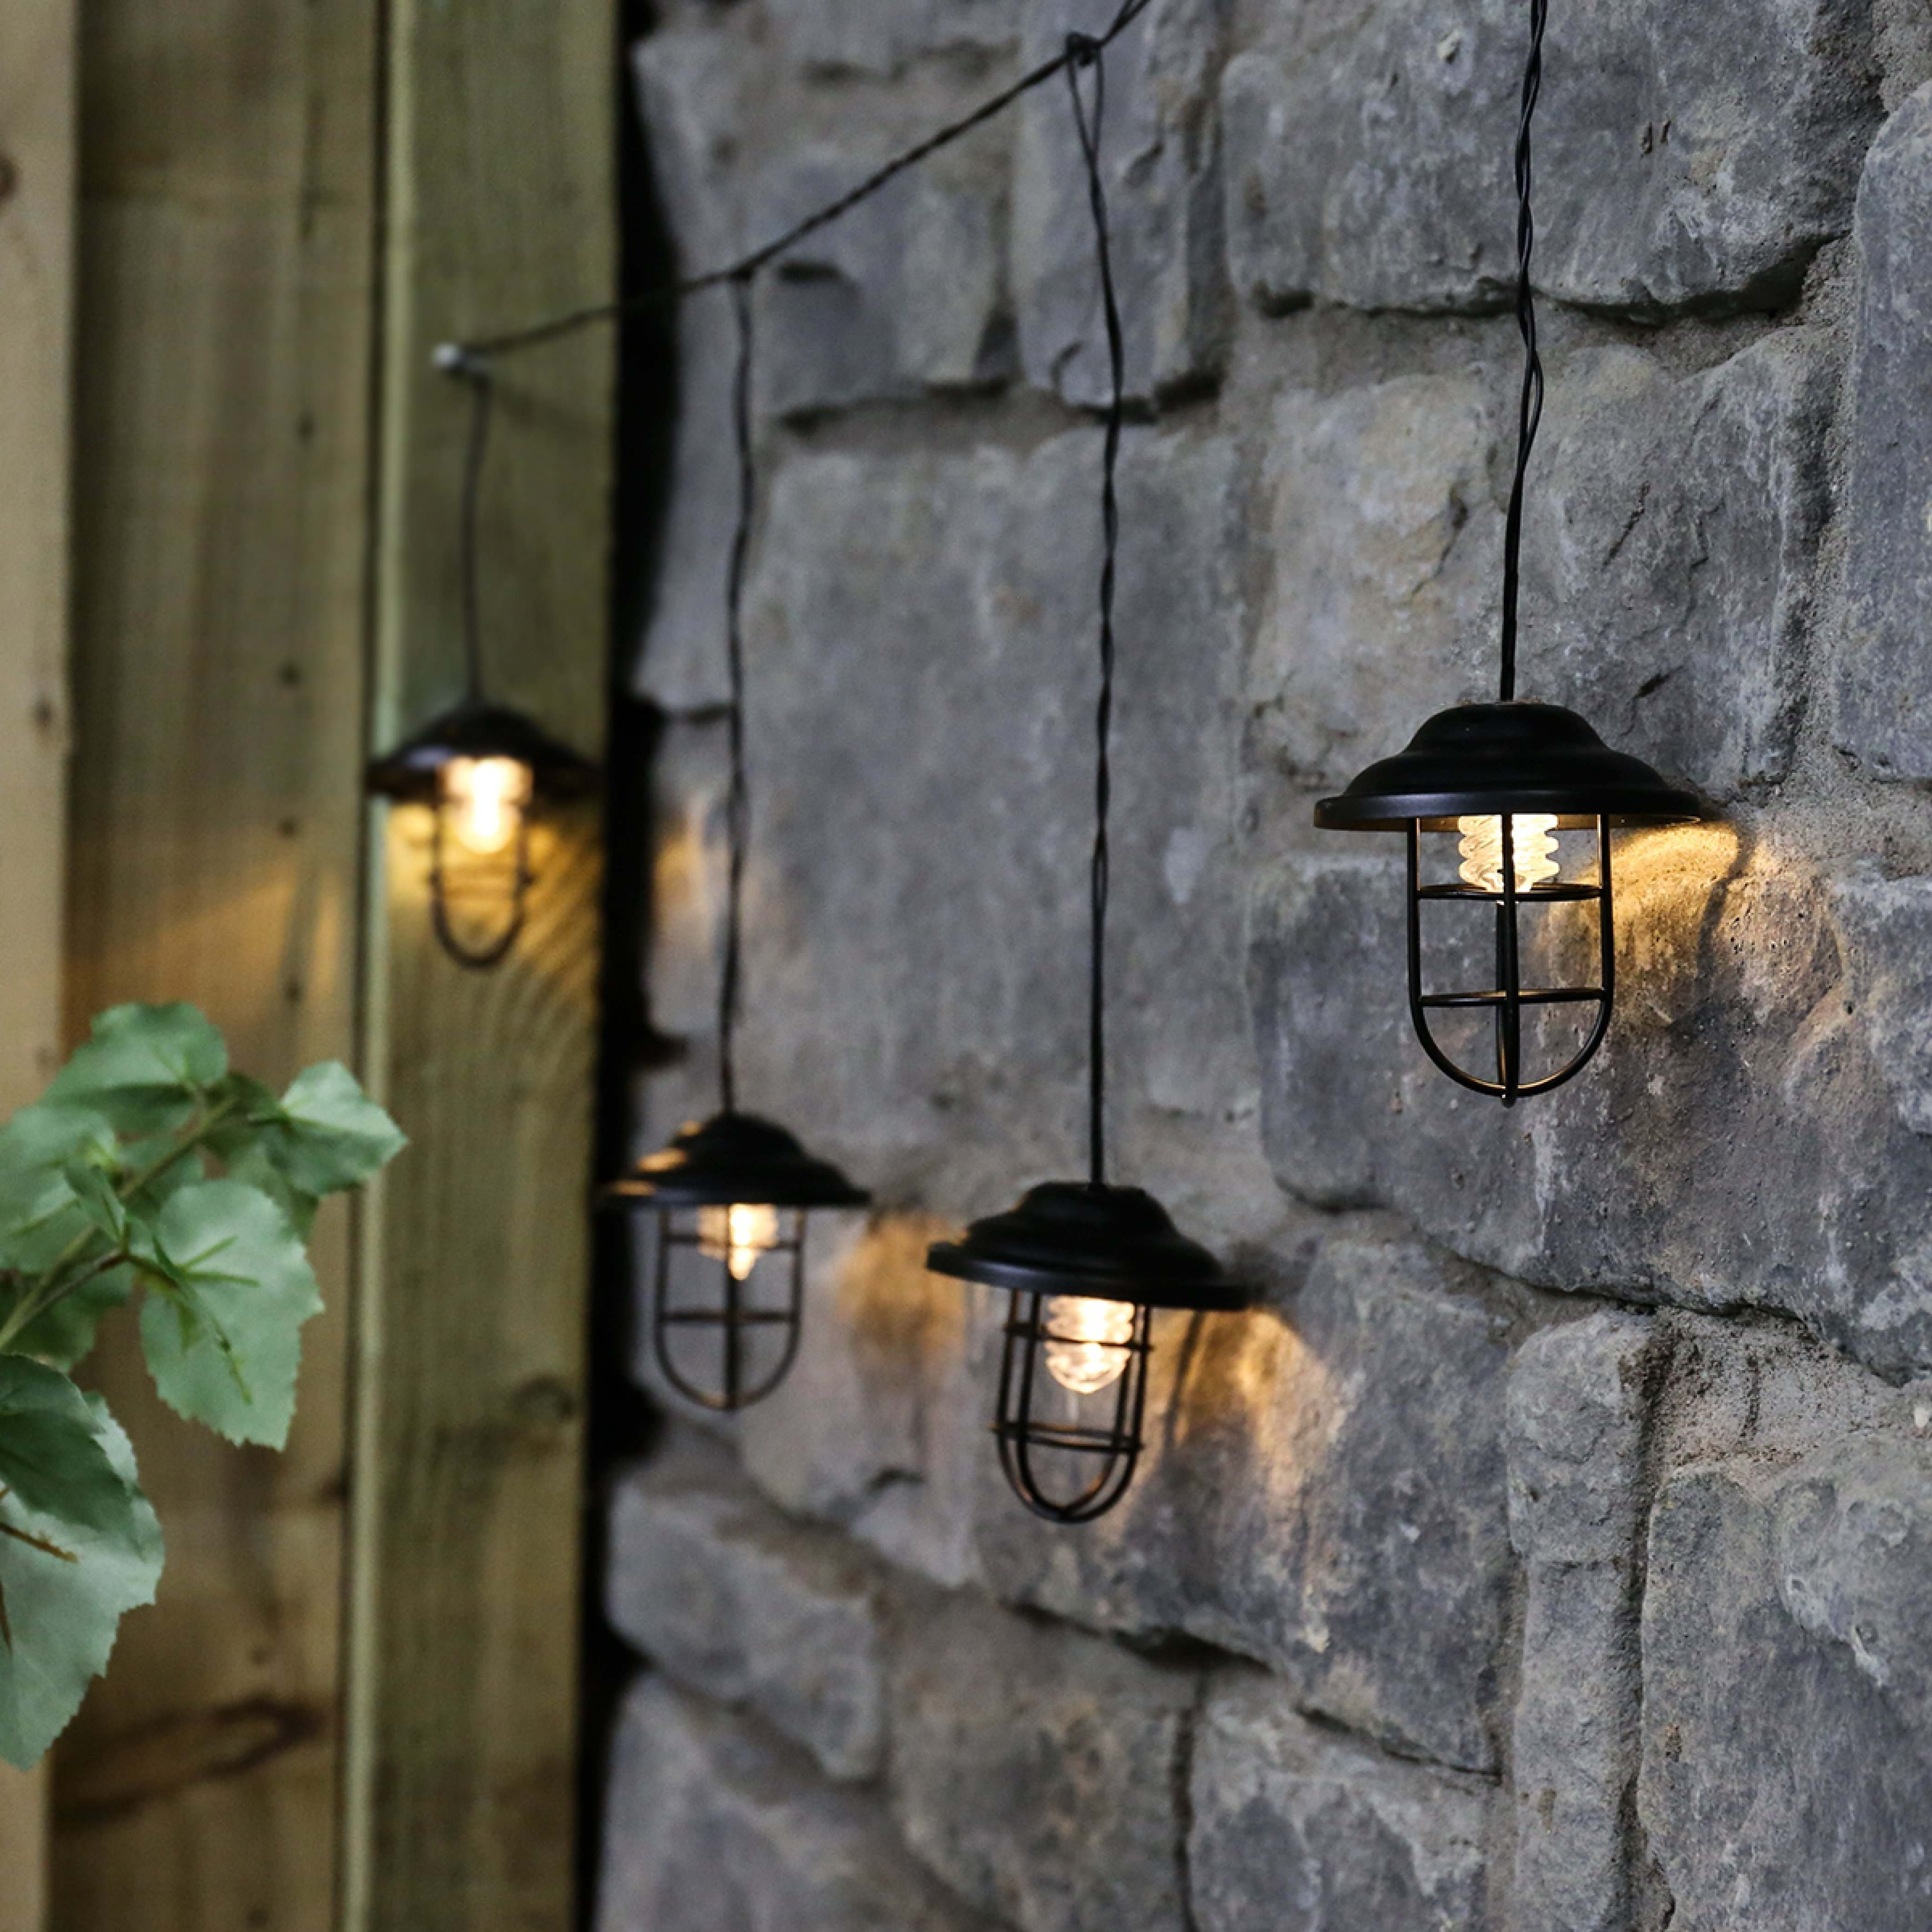 Outdoor Metal Plug In Lantern String Lights, Warm White Leds, 1M In Best And Newest Plug In Outdoor Lanterns (View 8 of 20)